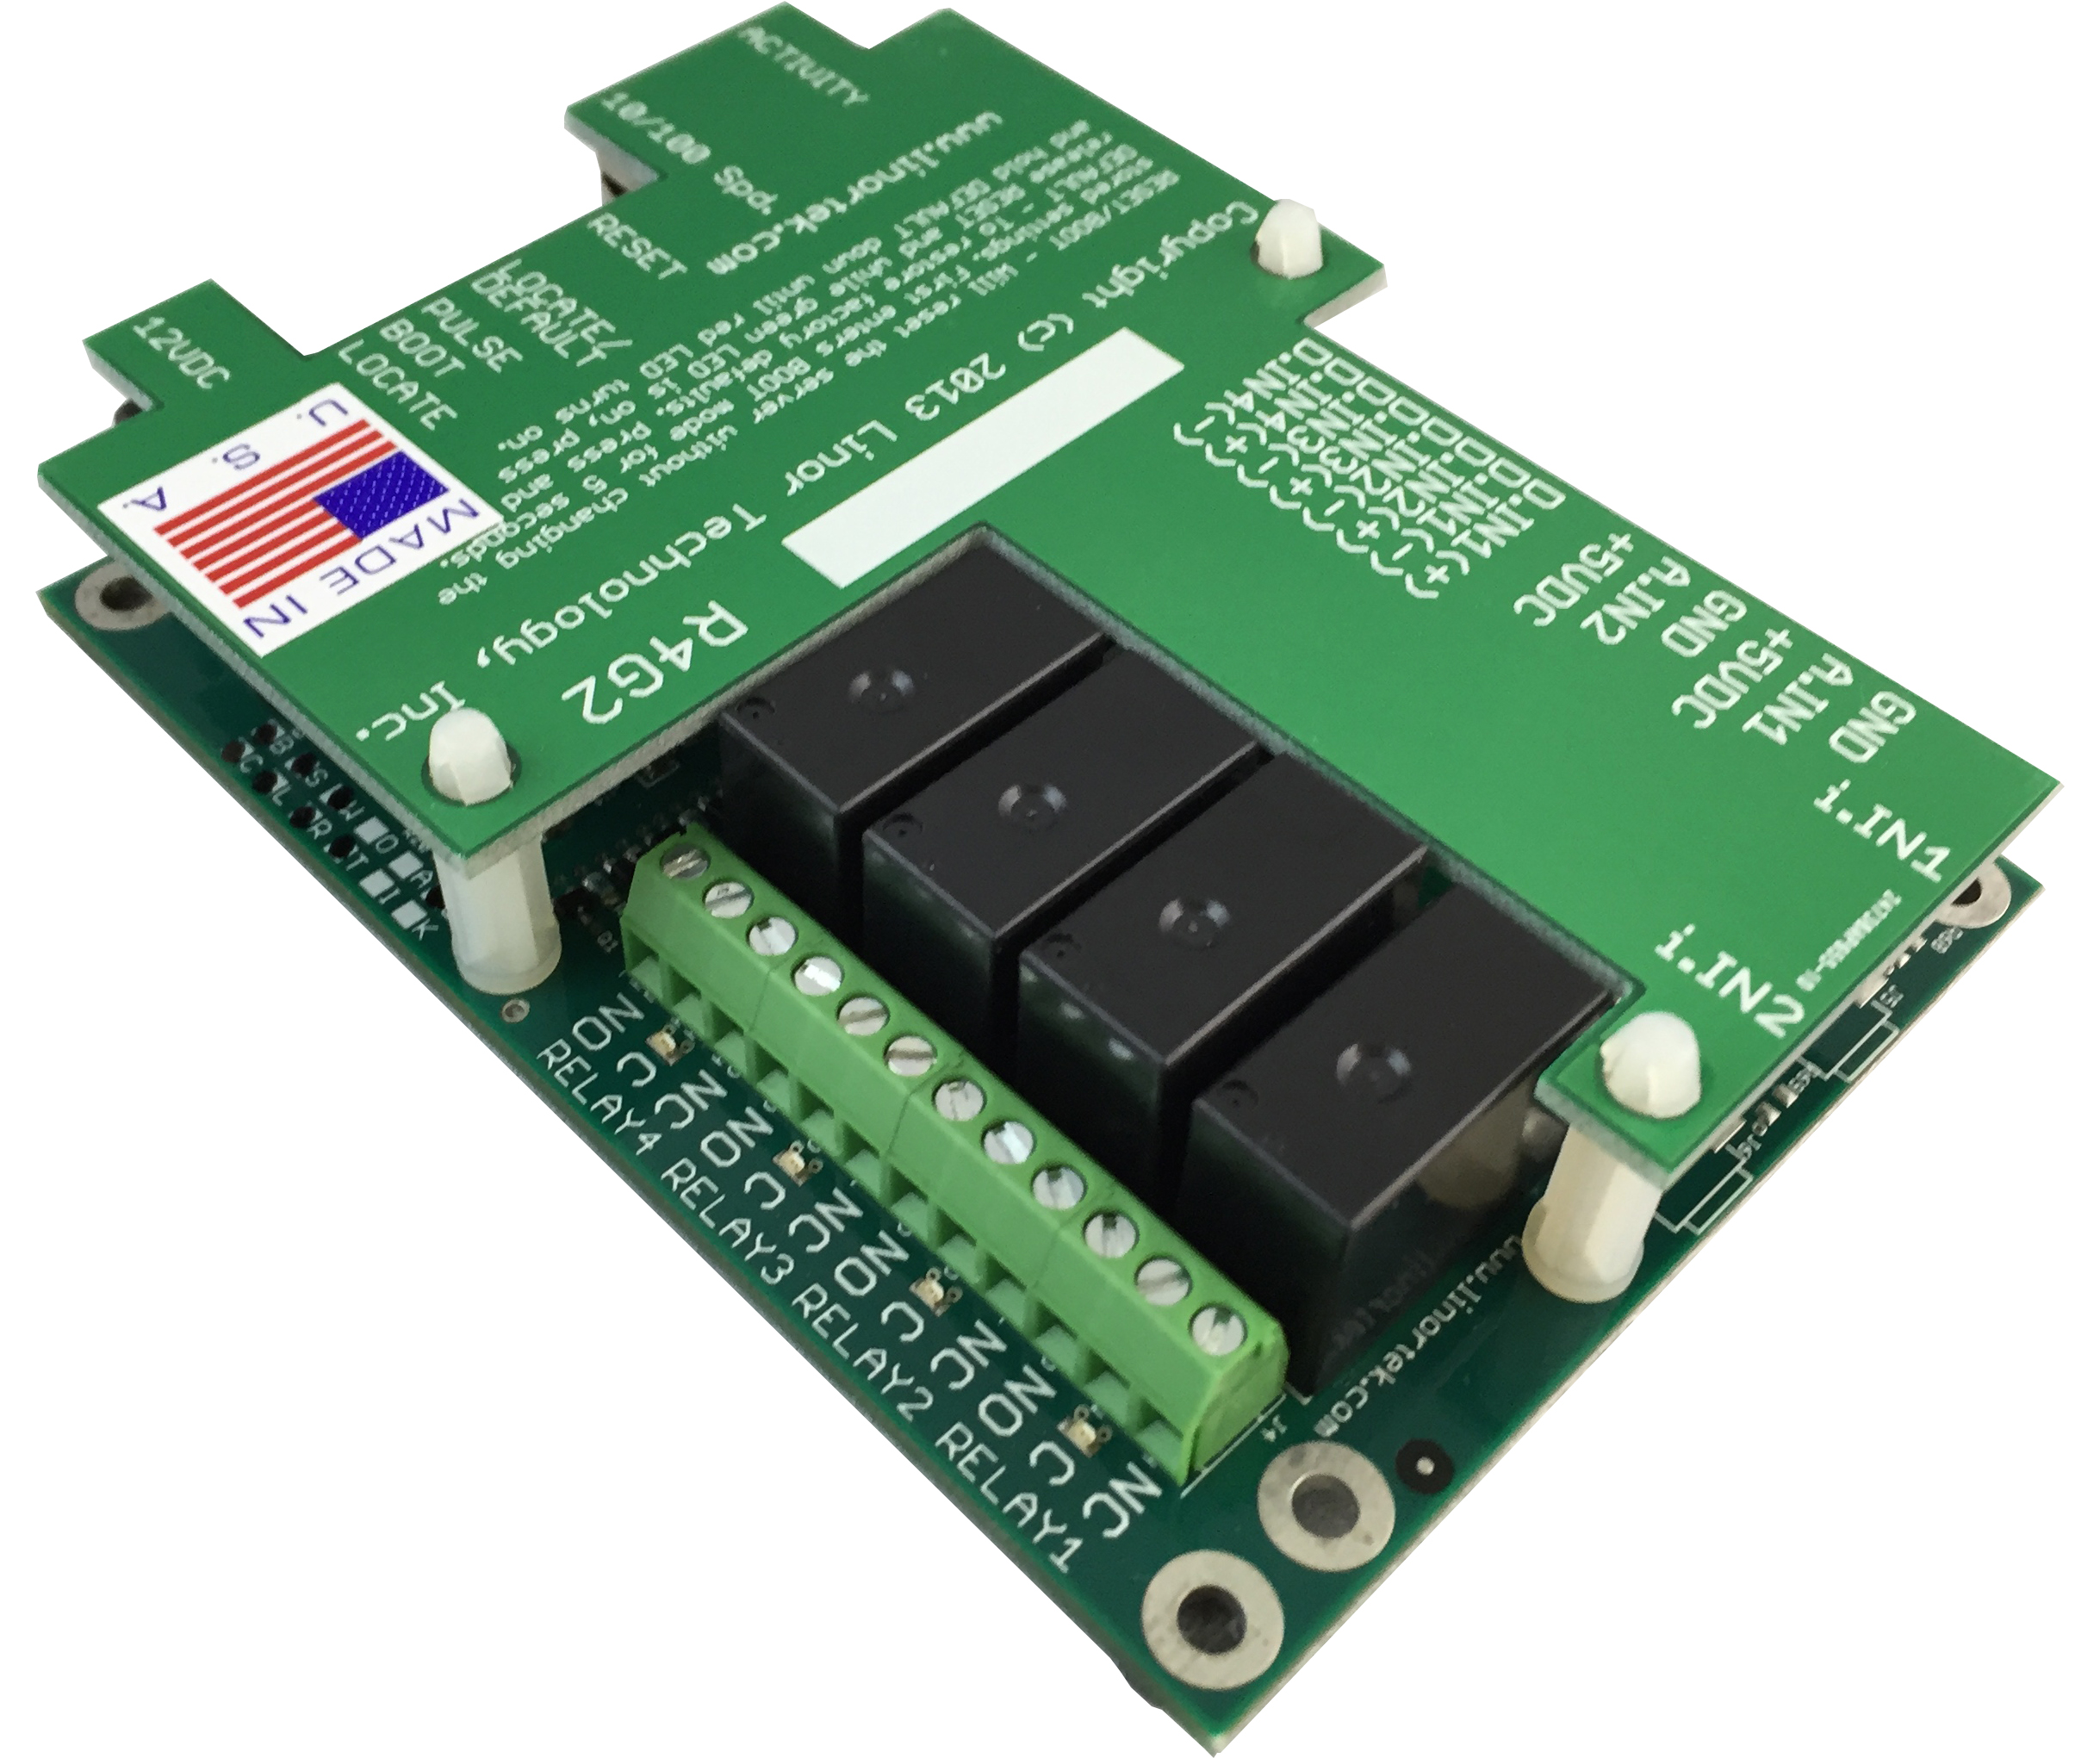 Fargo G2r4di Web Based Tcp Ip Ethernet Relay Board 4 Outputs Optoisolated Controller Checkout The Video To See It In Action Digital